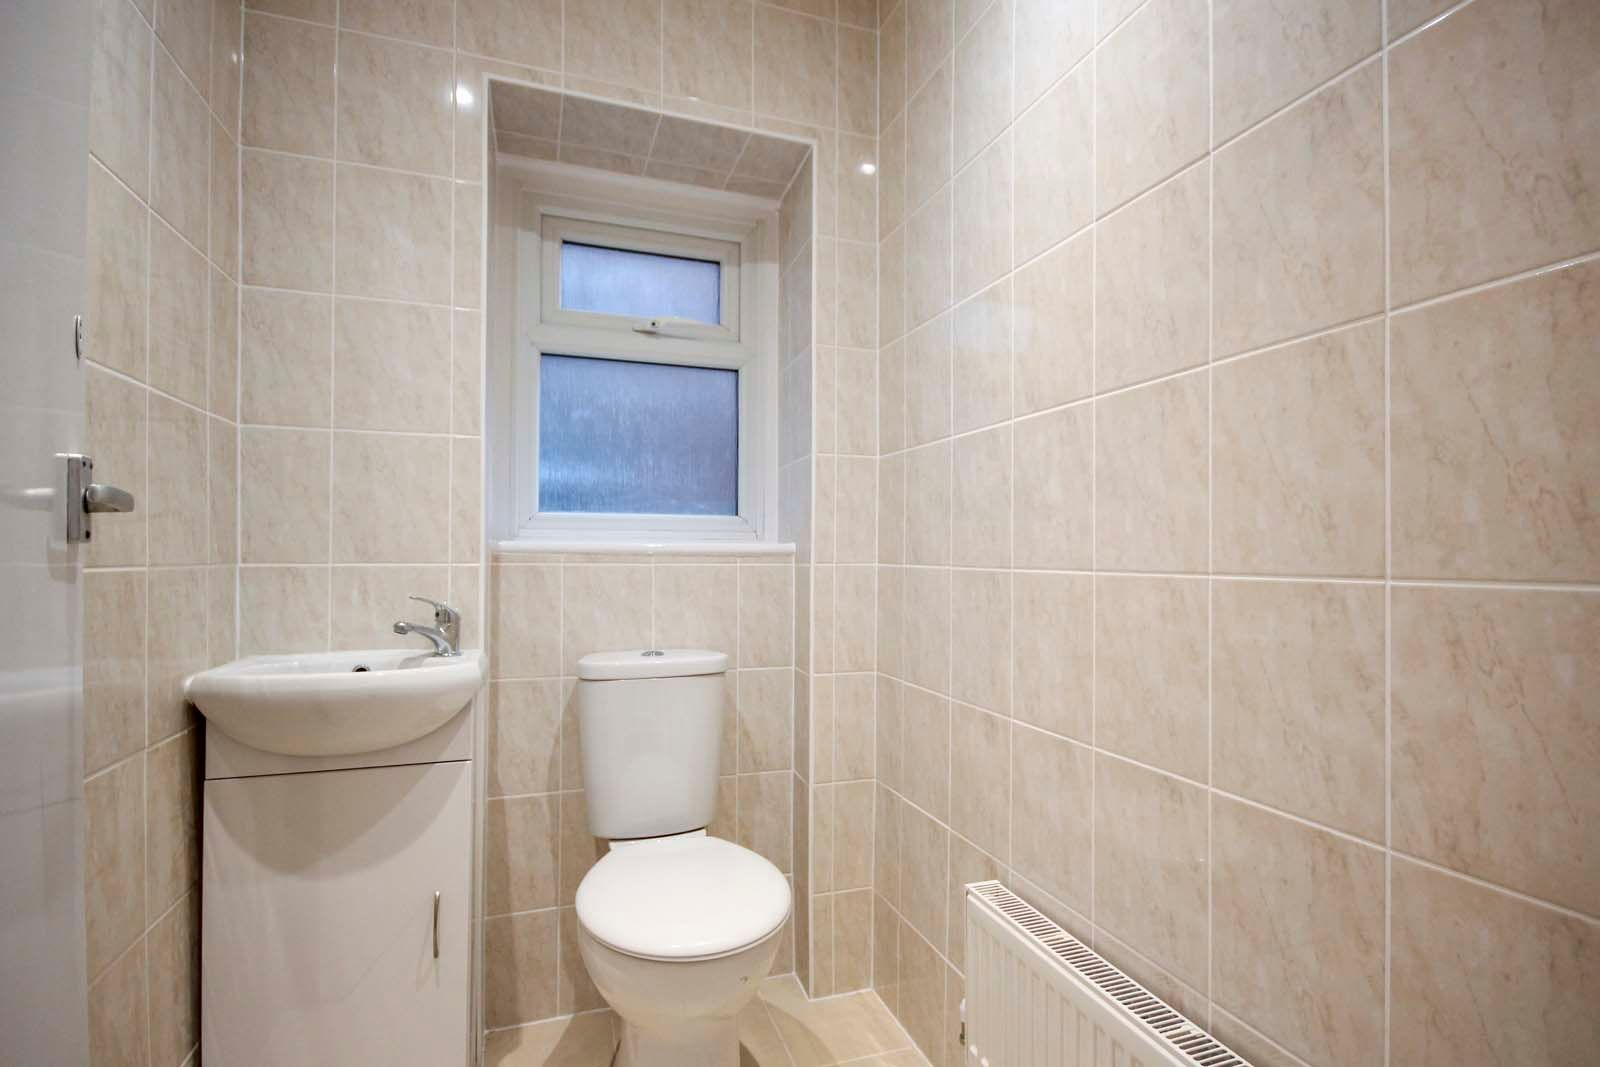 1 bed Apartment to rent in Littlehampton - Cloakroom (Property Image 3)